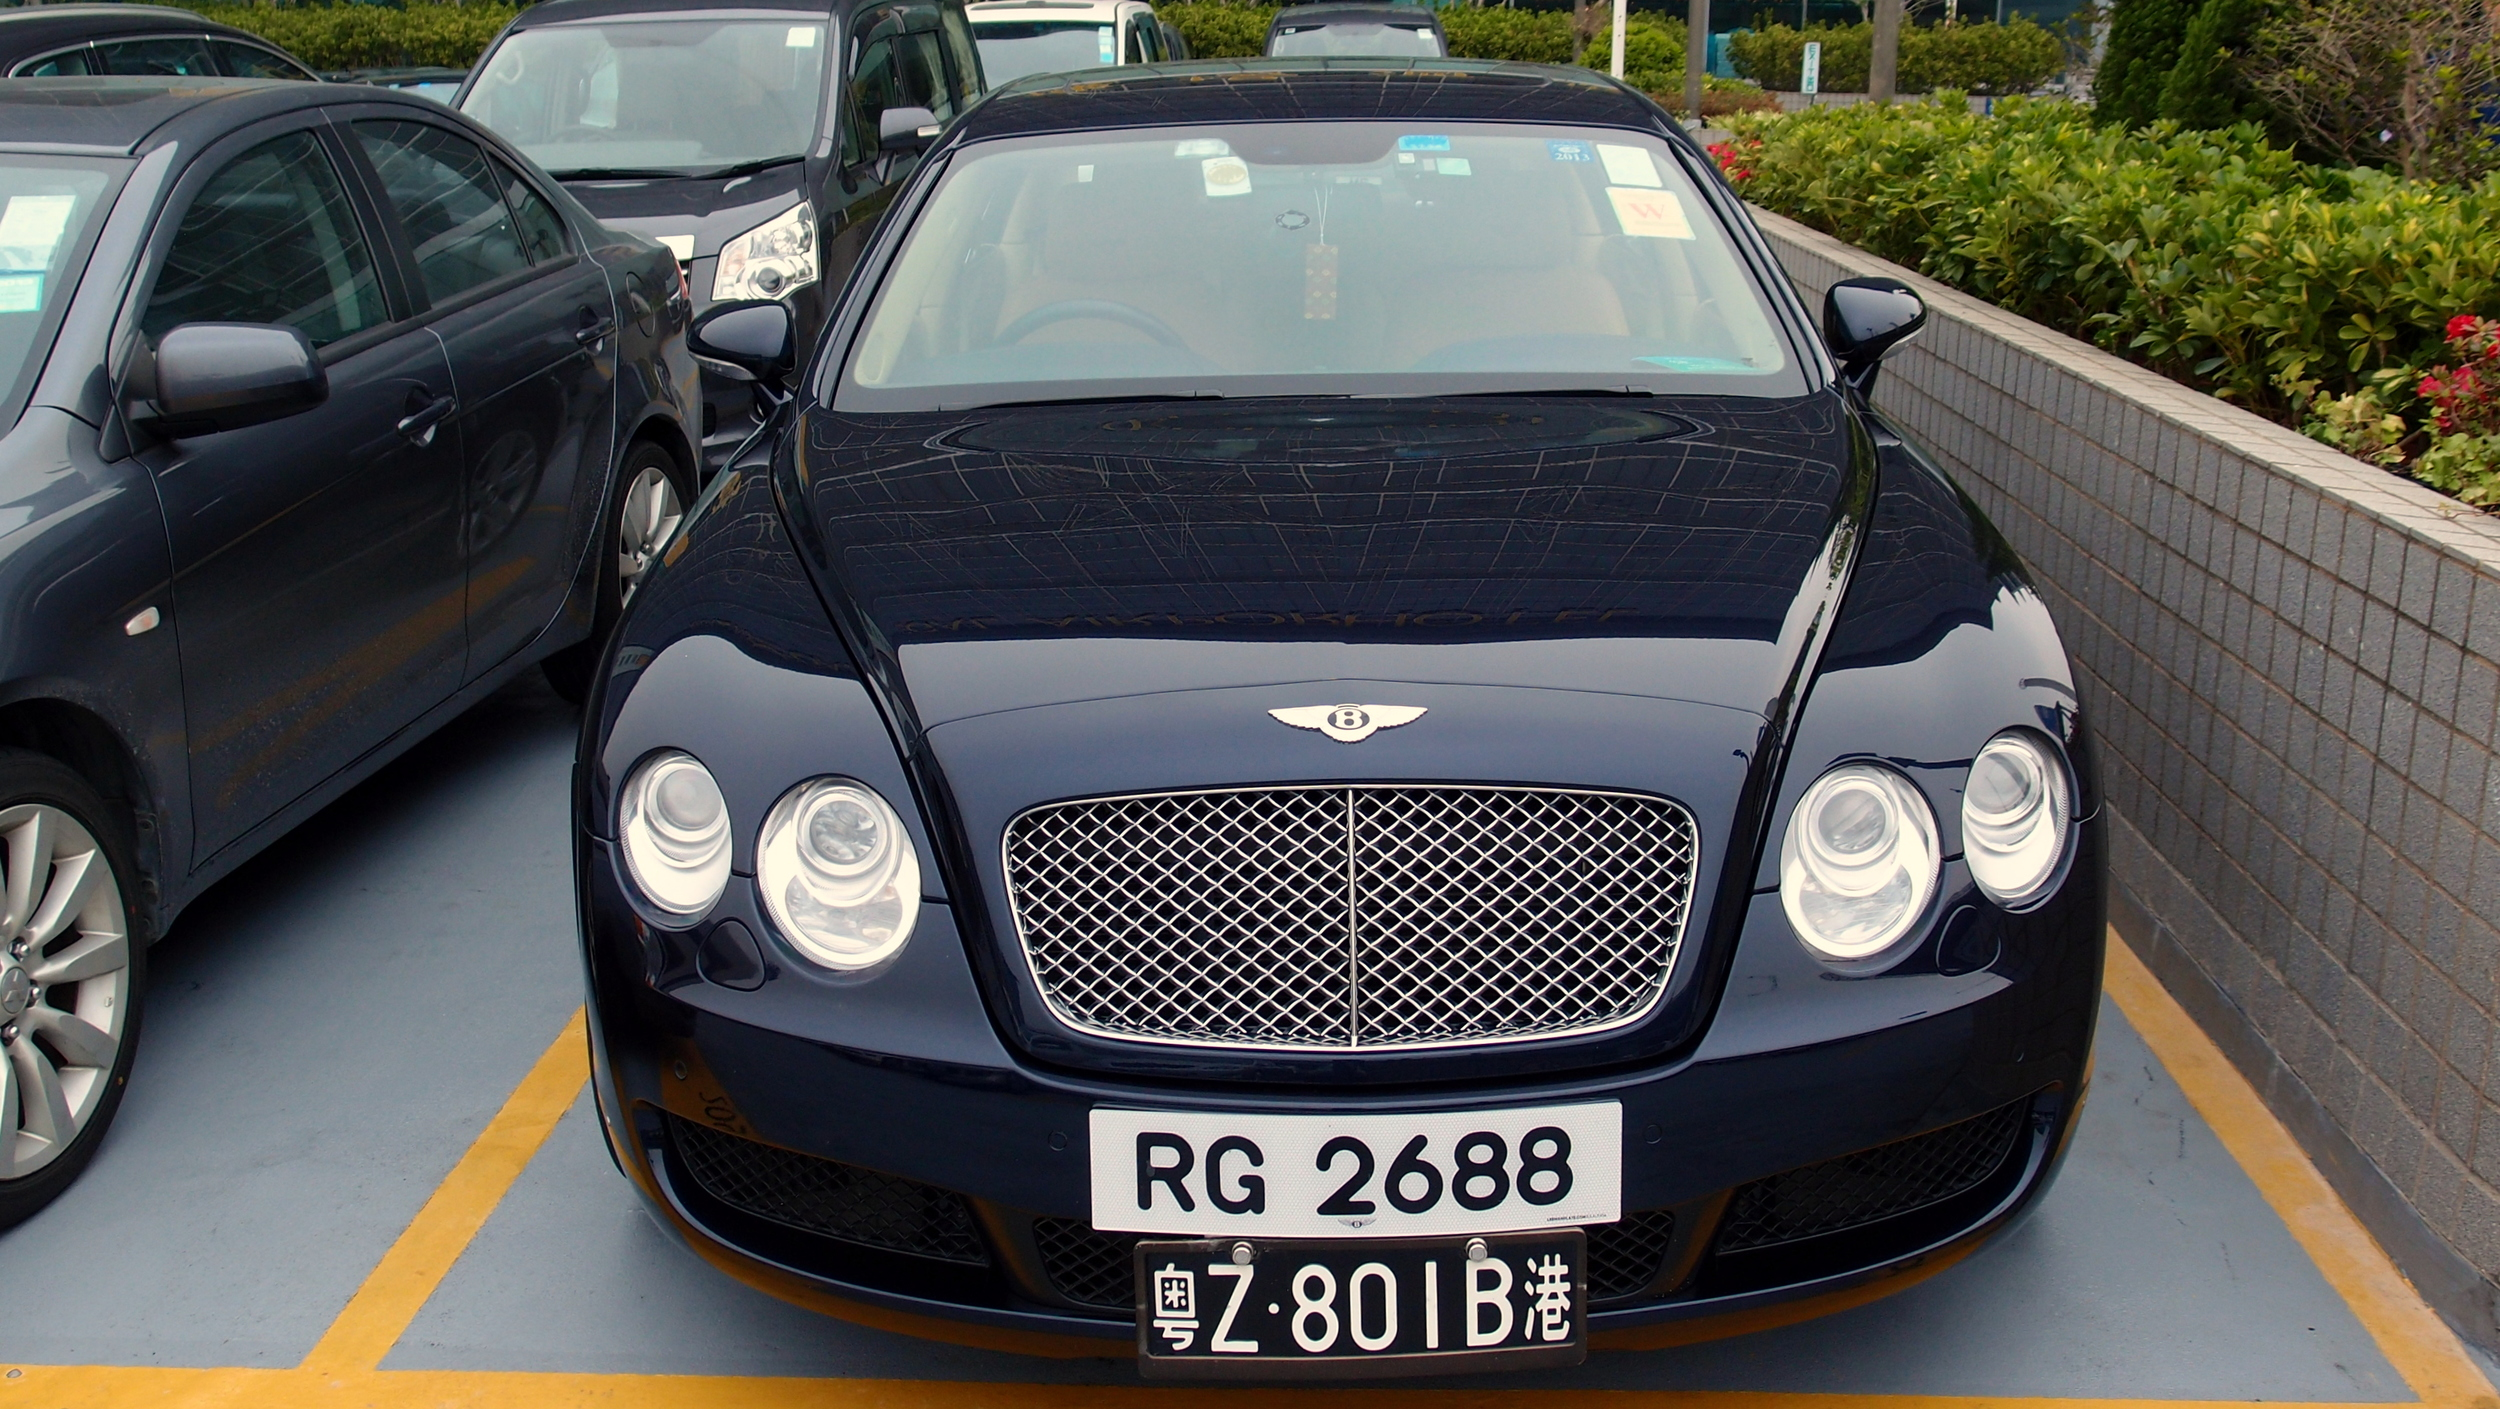 The white number plate is the standard Hong Kong plate, the black one allows the car to be driven in Mainland China.